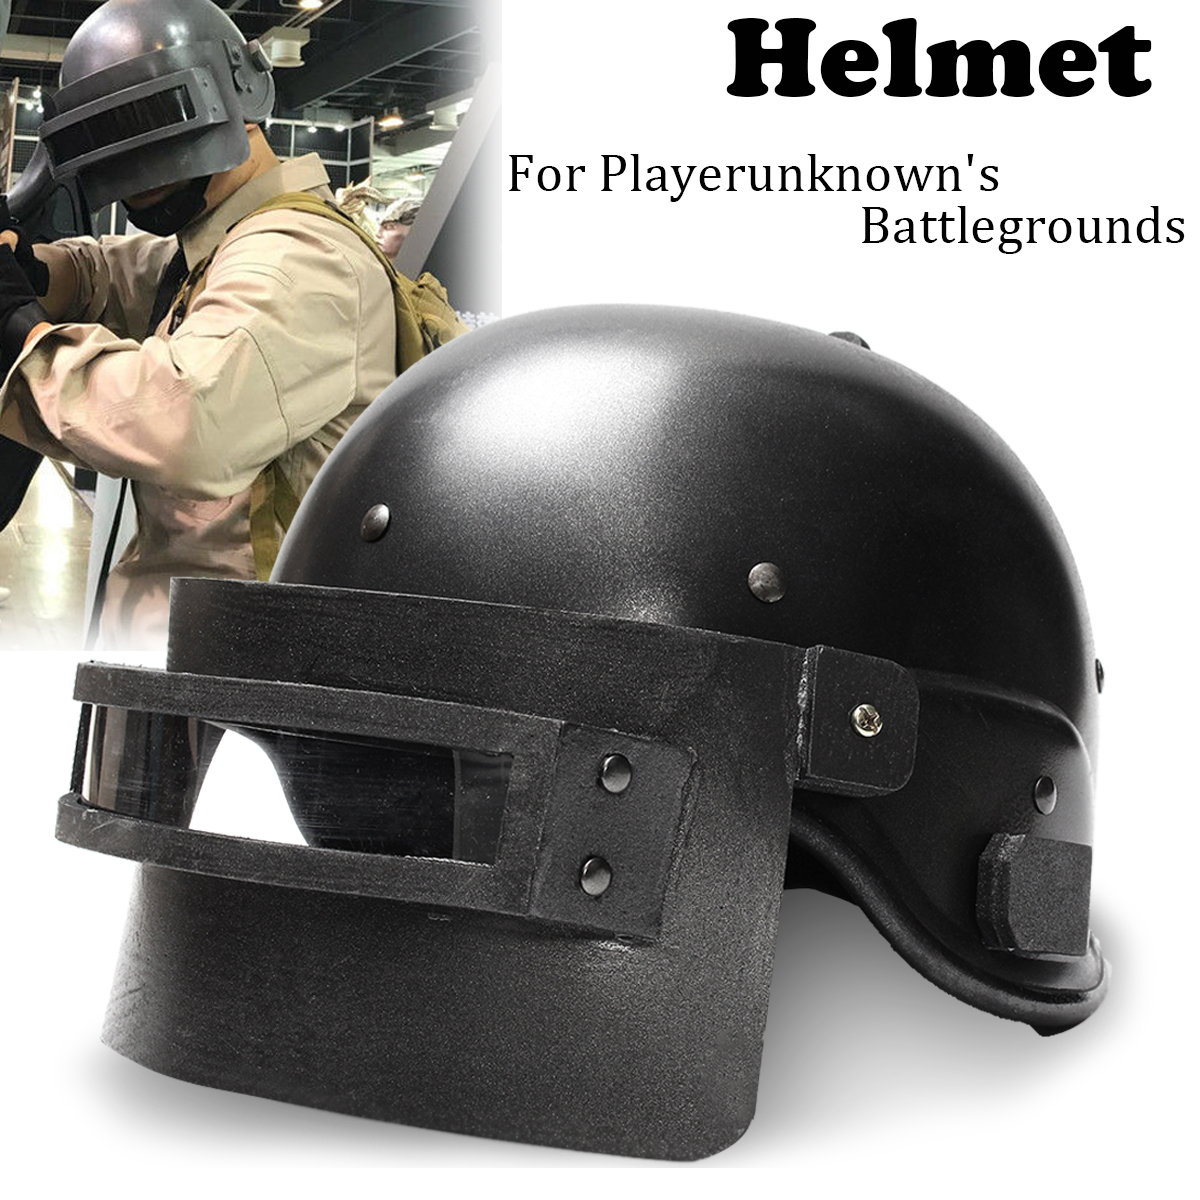 Cosplay Helmet Game for Playerunknown's Battlegrounds Level 3 Safety Helmets Cap Head Protection Mask pair of chic faux pearl hollow out earrings for women